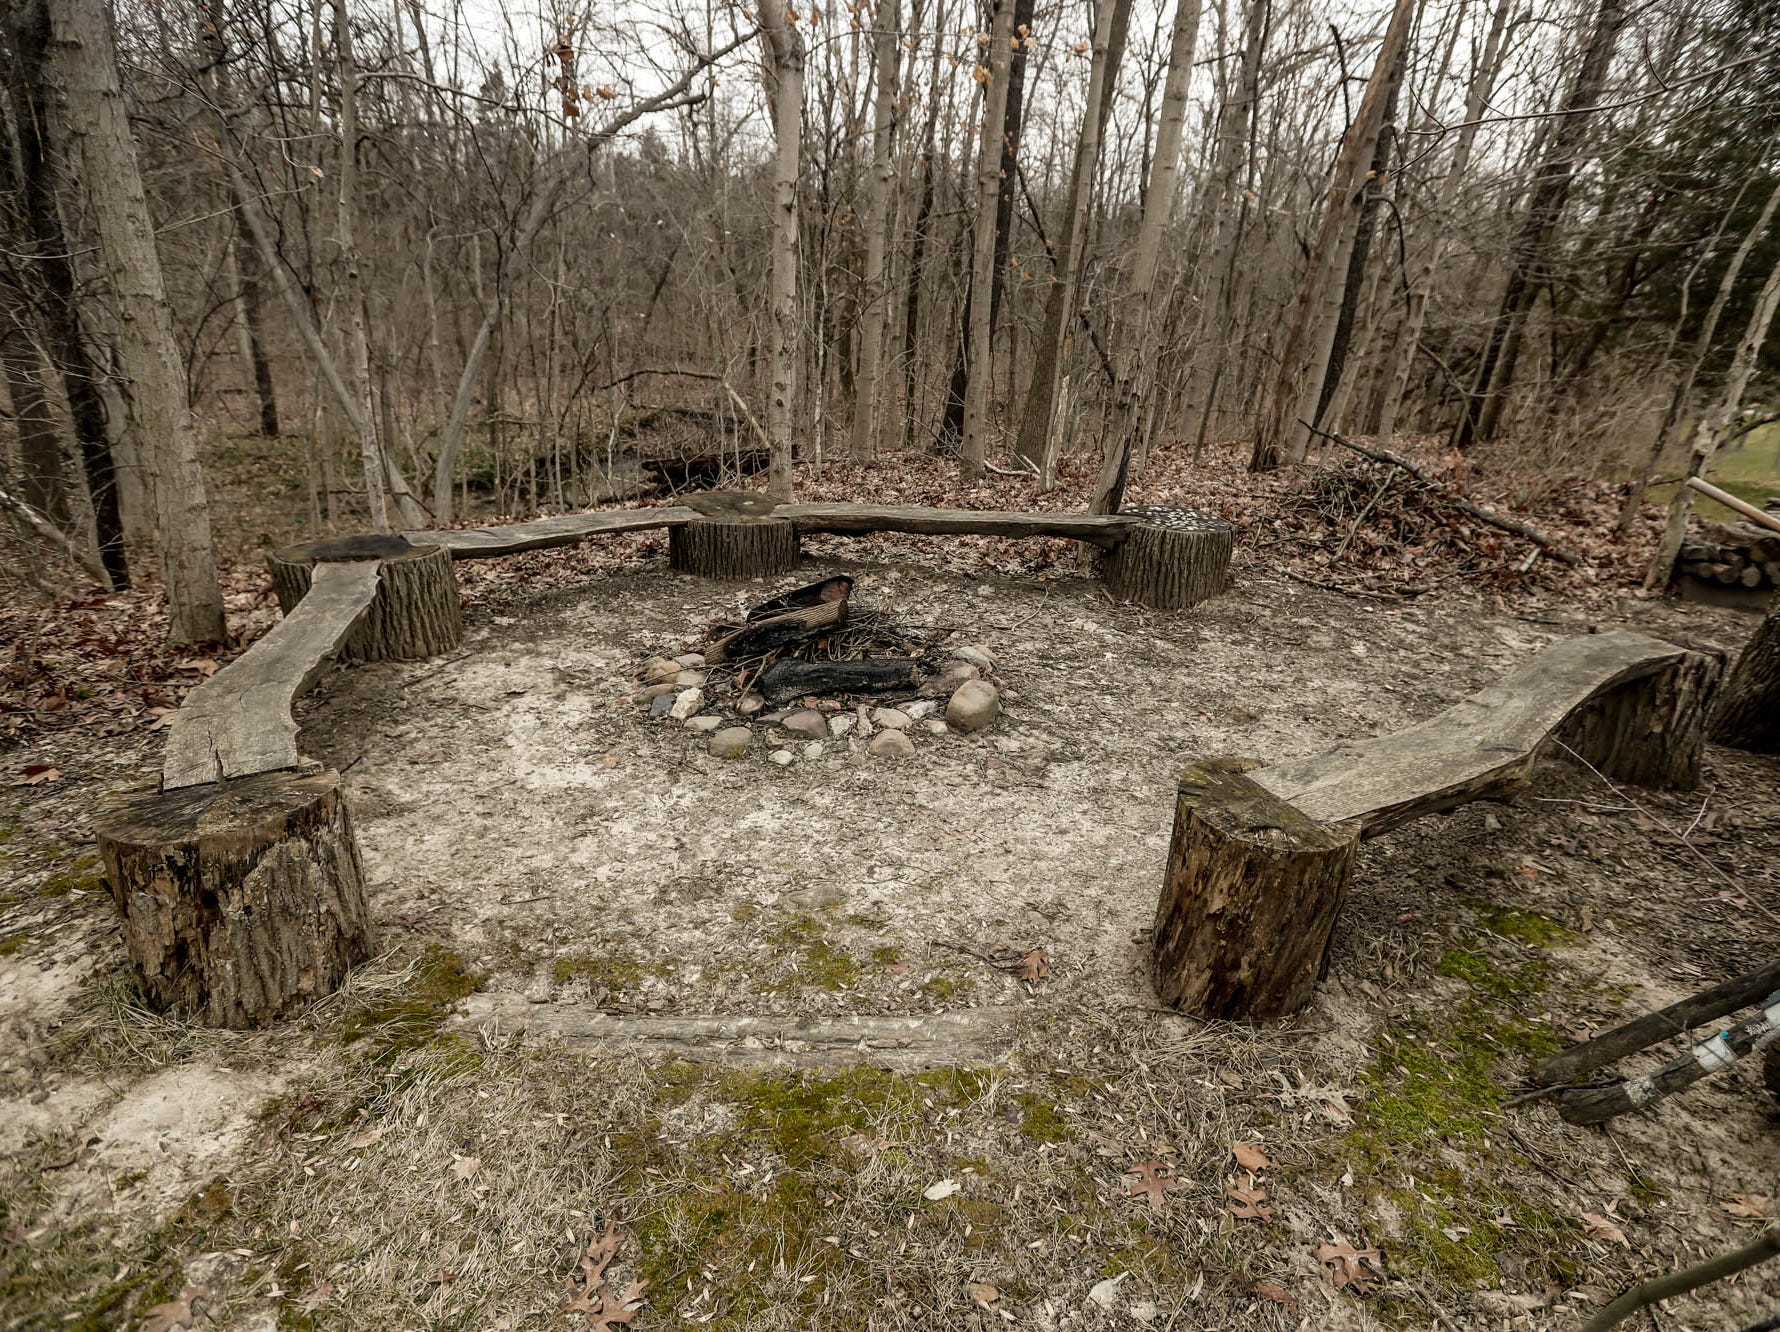 A rustic hand built fire pit is located outside a traditional style $2m home with elements of French country and Tuscan influence up for sale in Bargersville Ind. on Wednesday, Jan. 9, 2019. The house sits on 8.1 acres.